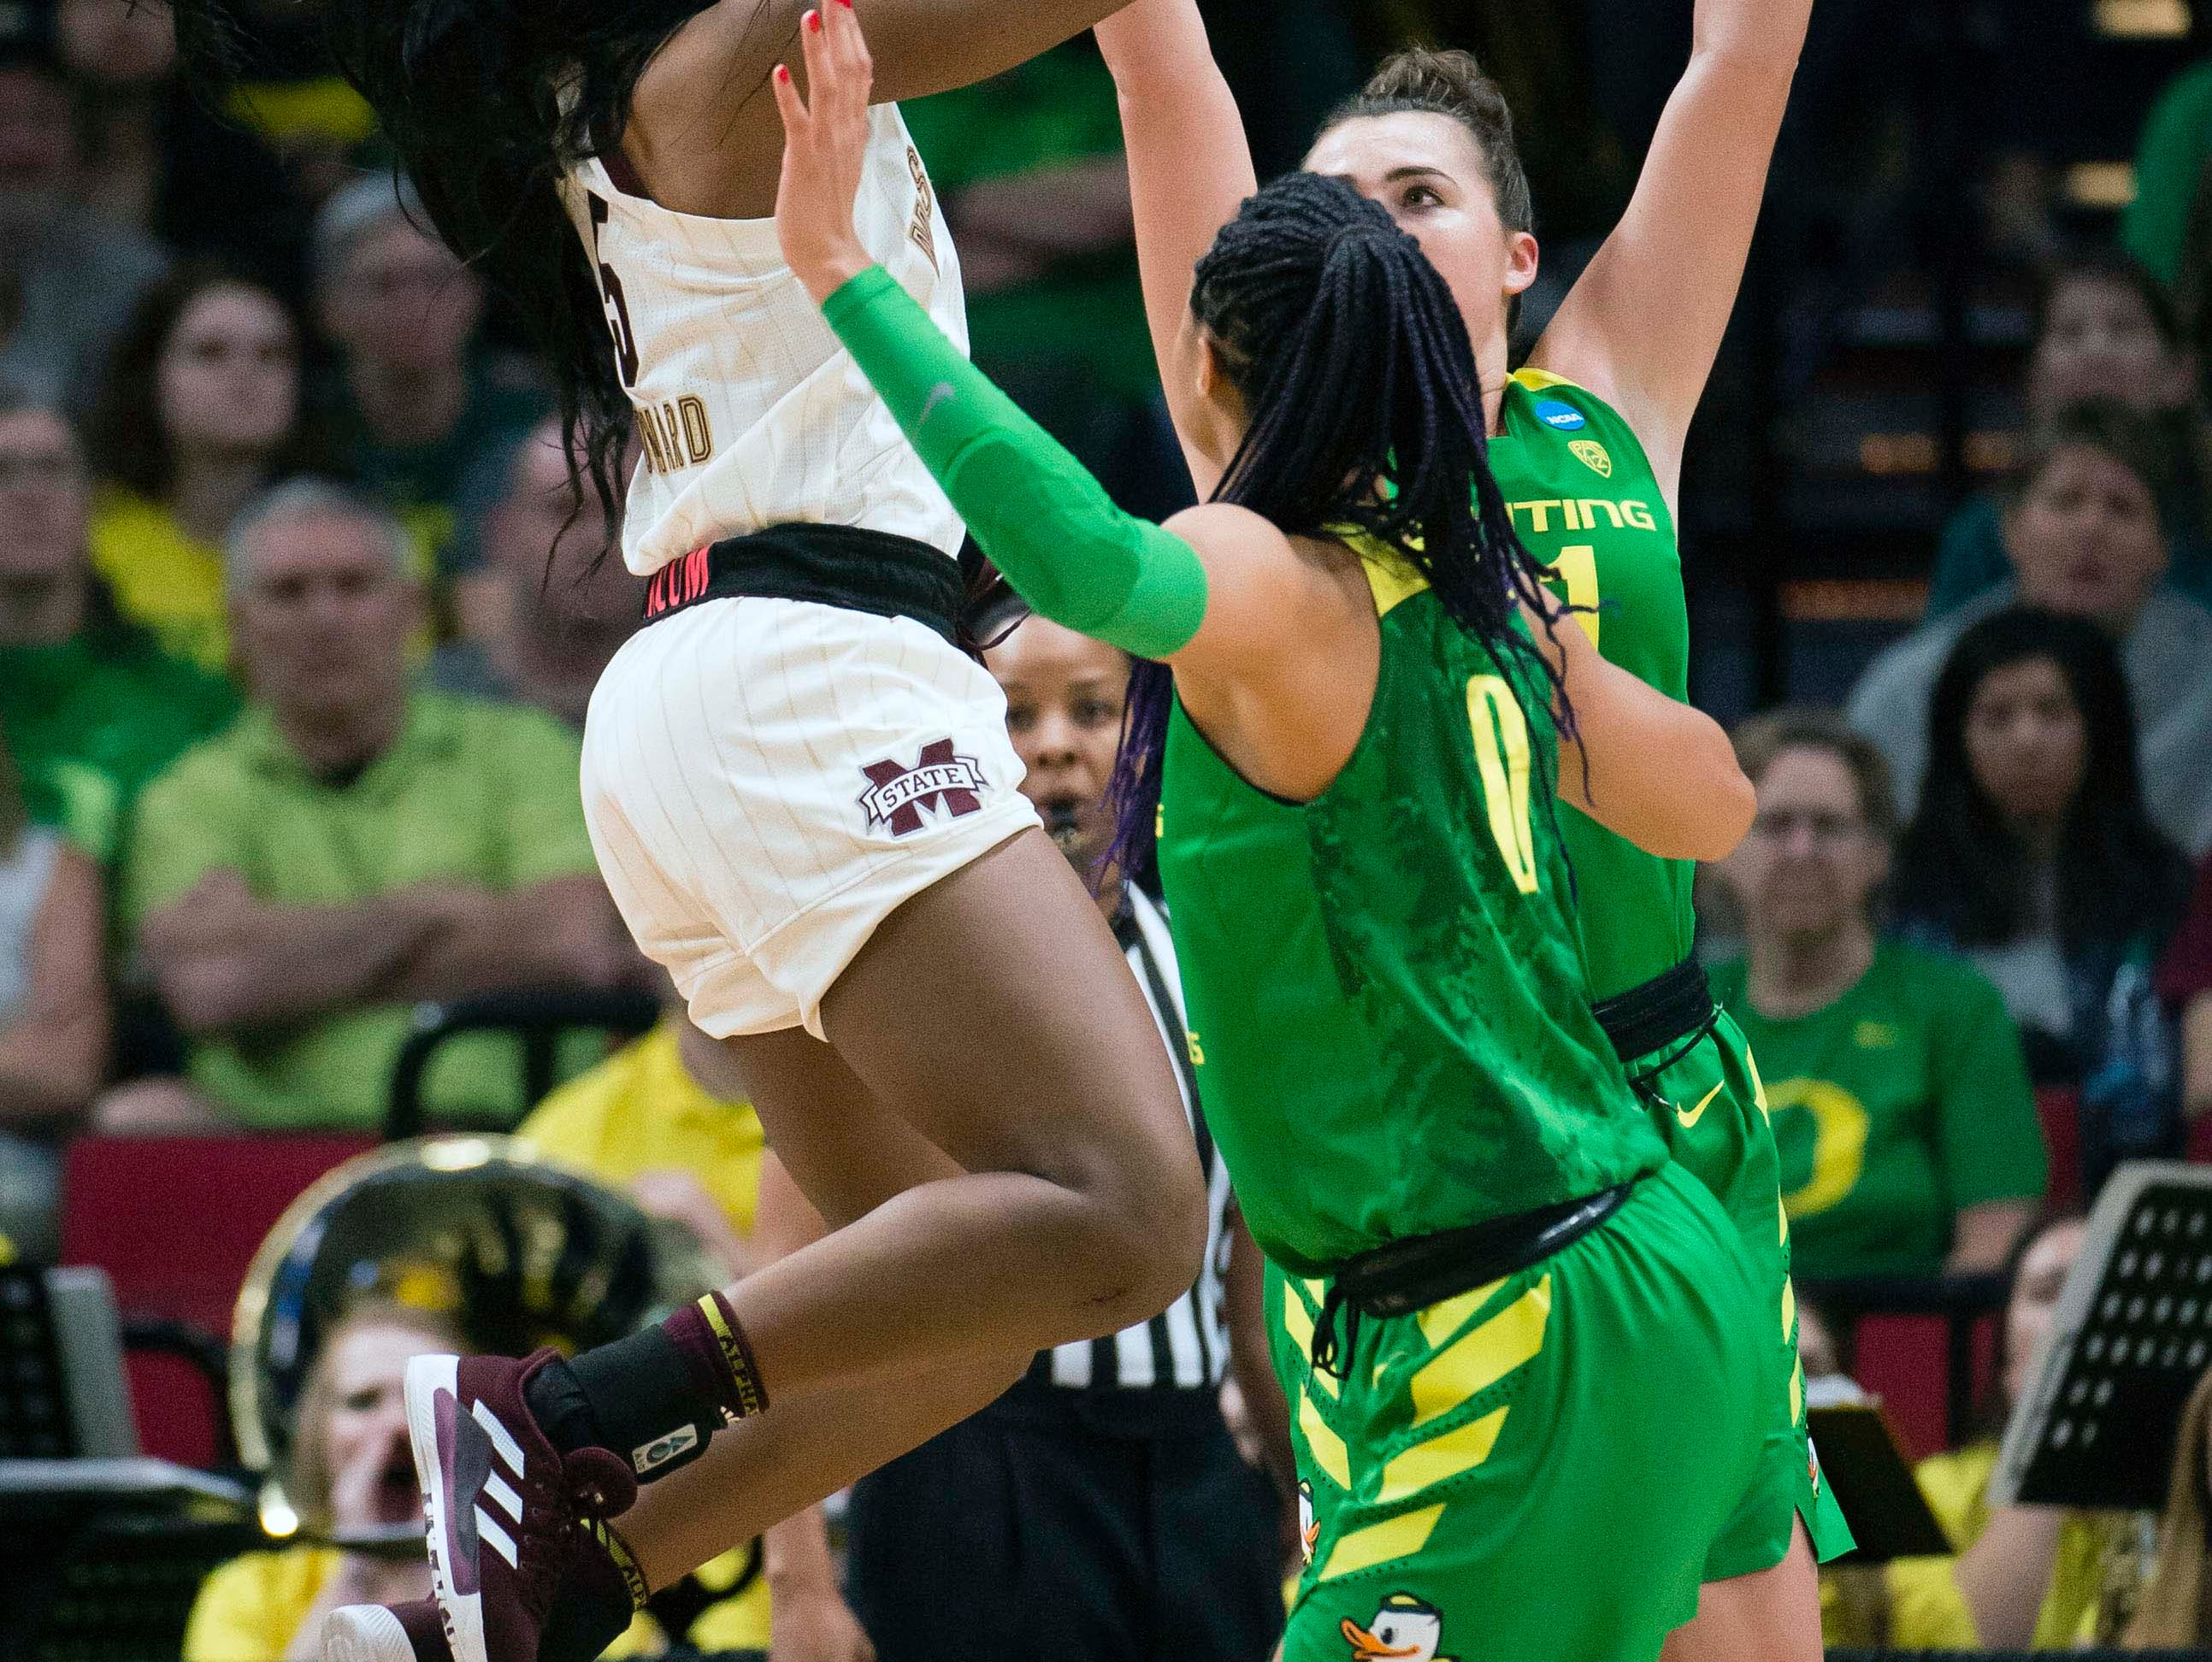 Mississippi State Bulldogs forward Anriel Howard (5) scores a basket against Oregon Ducks forward Satou Sabally (0) during the first half in the championship game of the Portland regional in the women's 2019 NCAA Tournament at Moda Center.